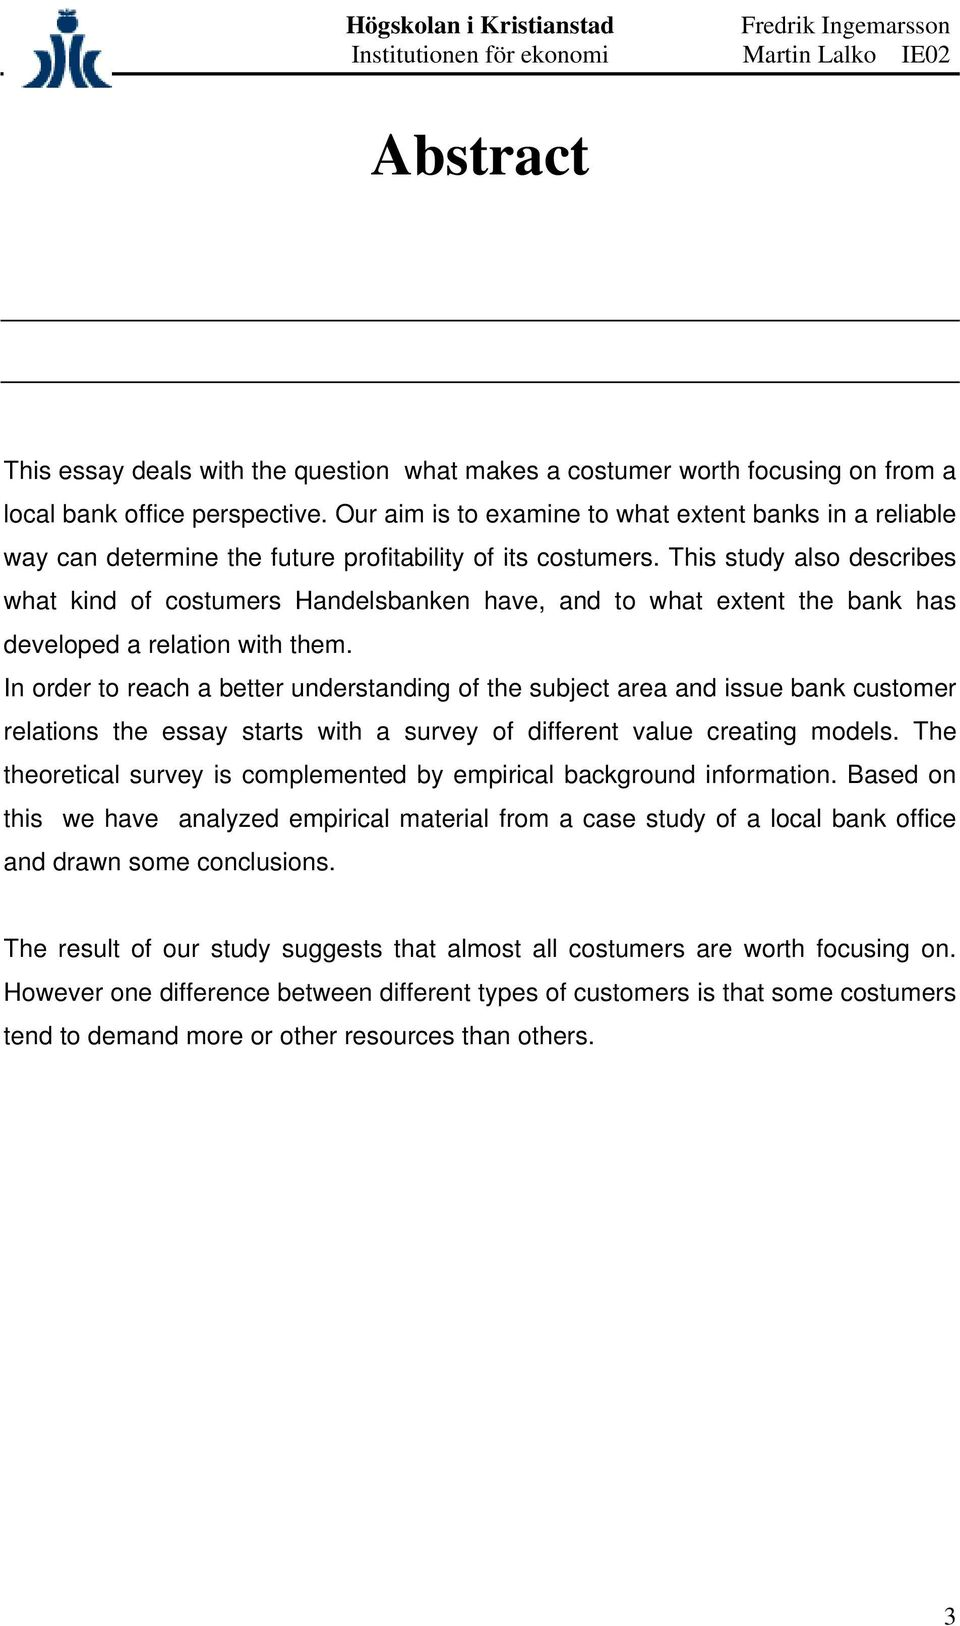 This study also describes what kind of costumers Handelsbanken have, and to what extent the bank has developed a relation with them.